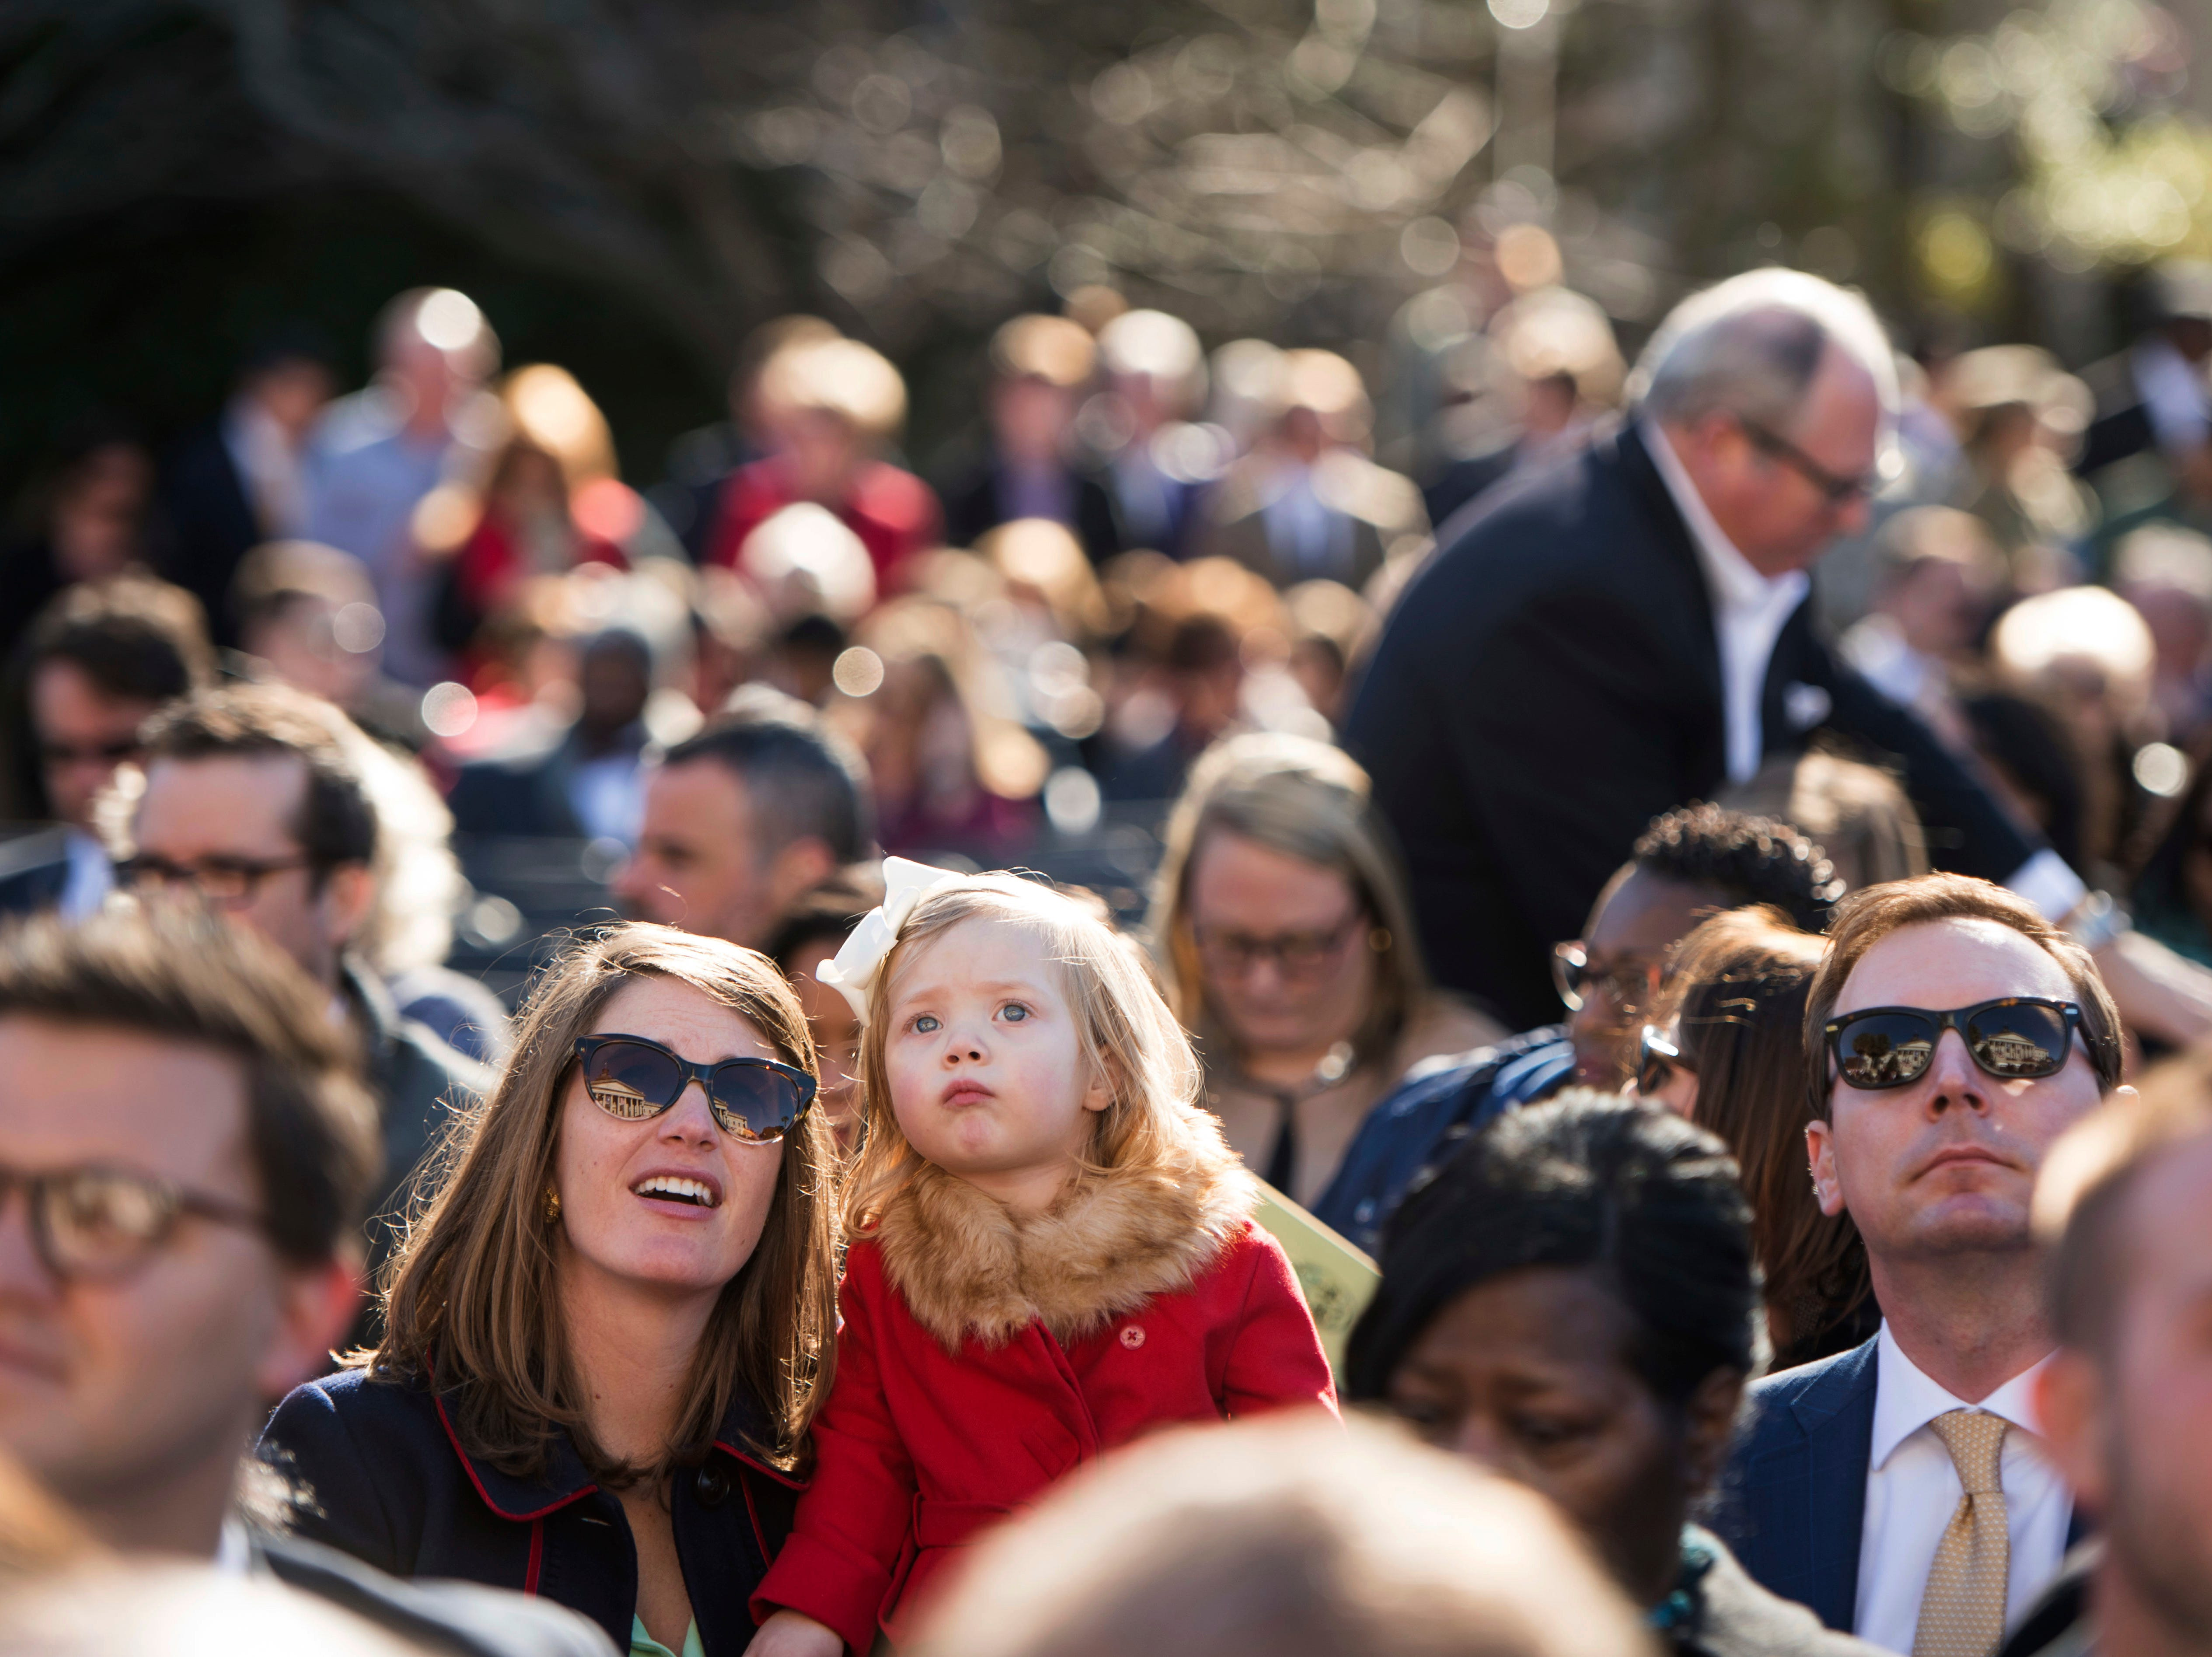 People in the crowd wait for the start of the inauguration ceremony of South Carolina Gov. Henry McMaster at the South Carolina Statehouse, Wednesday, Jan. 9, 2019, in Columbia, S.C. McMaster defeated Democratic state Rep. James Smith in the Nov. 6 election. (AP Photo/Sean Rayford)